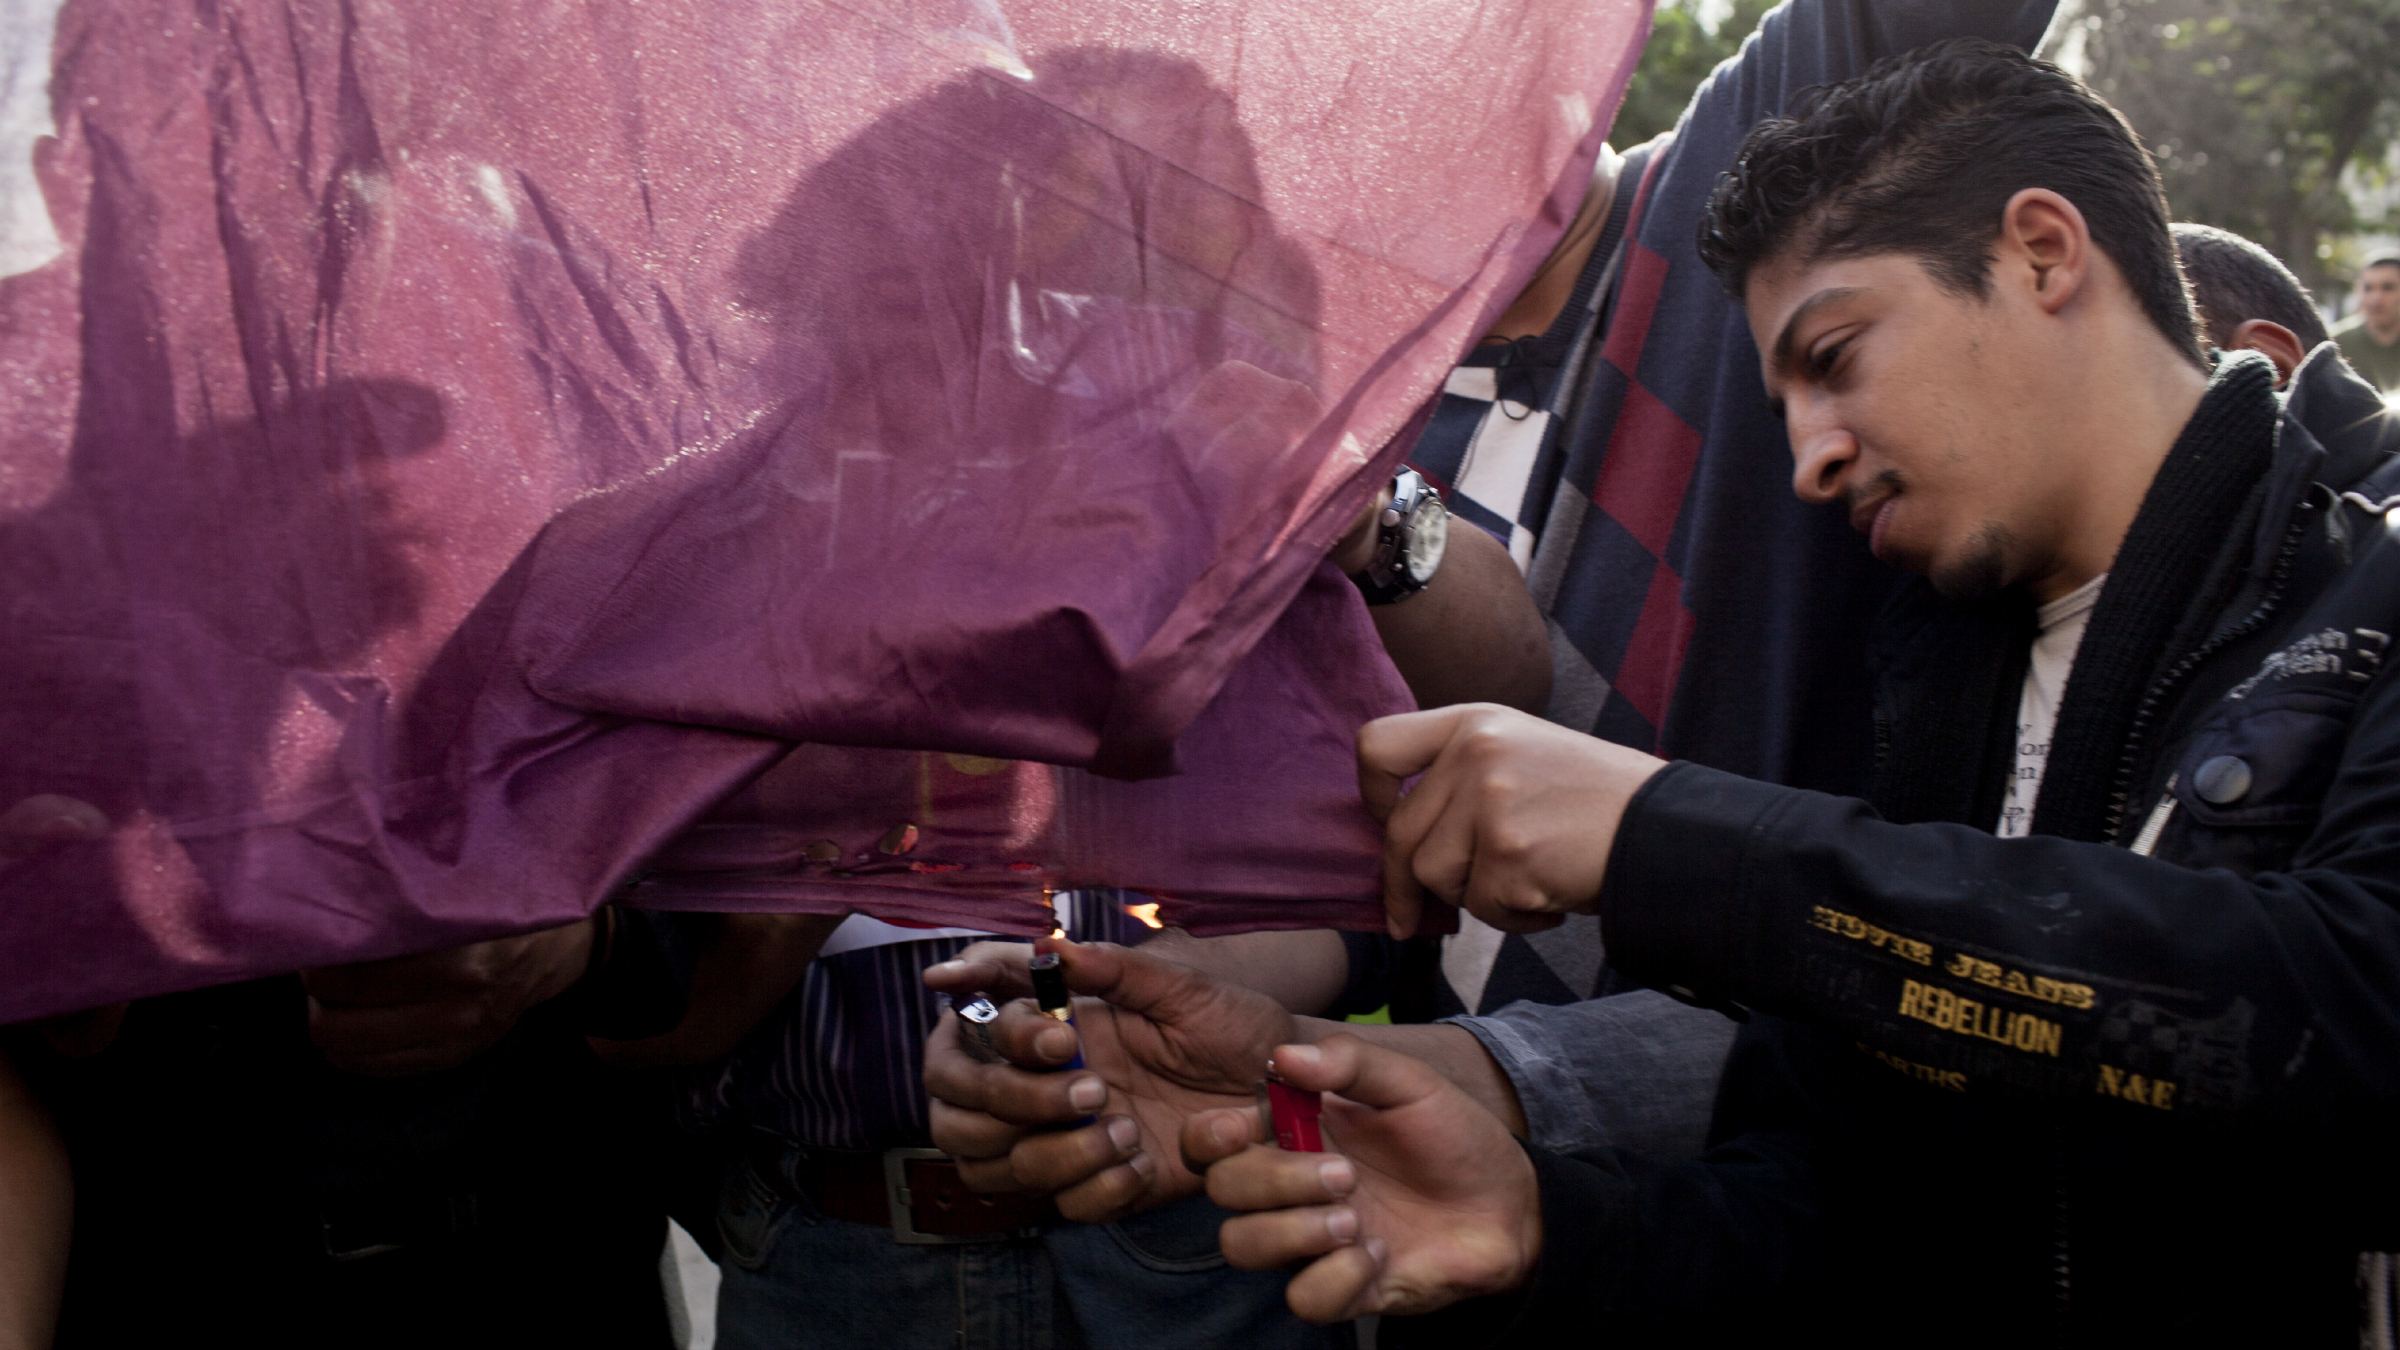 An Egyptian protester attempts to burn a Qatari flag during a demonstration against Egyptian President Mohammed Morsi and the government of the Muslim Brotherhood on April 6, 2013 in Cairo, Egypt. Hundreds of protesters gathered at multiple locations across Cairo and other cities in Egypt to mark the fifth anniversary of the April 6 movement, a major revolutionary group made up of youth and workers in Egypt.